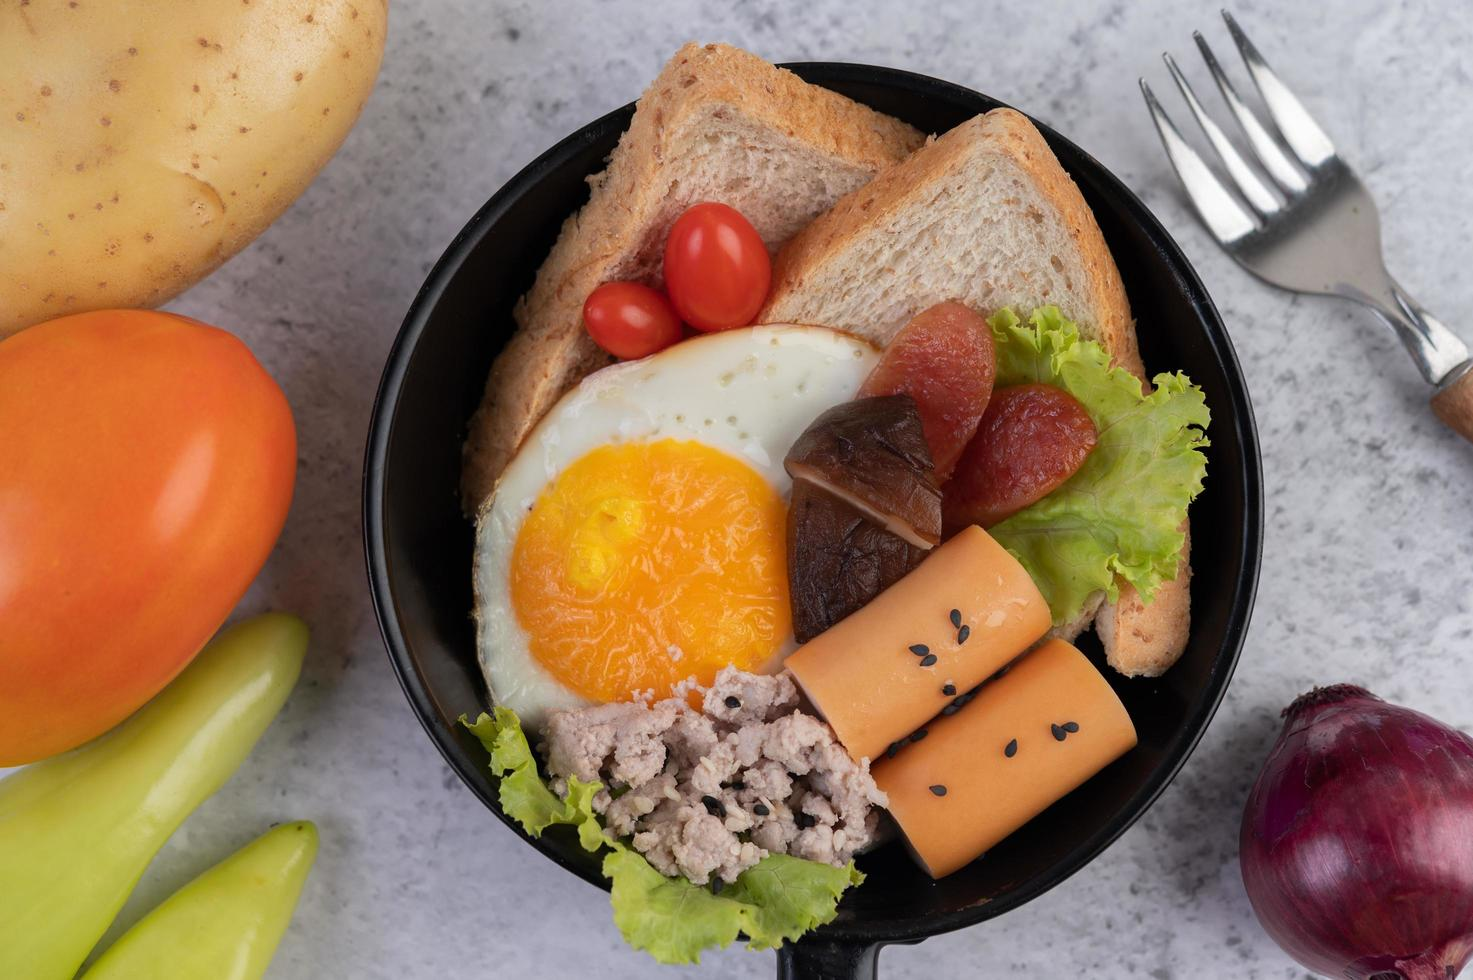 Vegetable salad with bread and boiled eggs photo